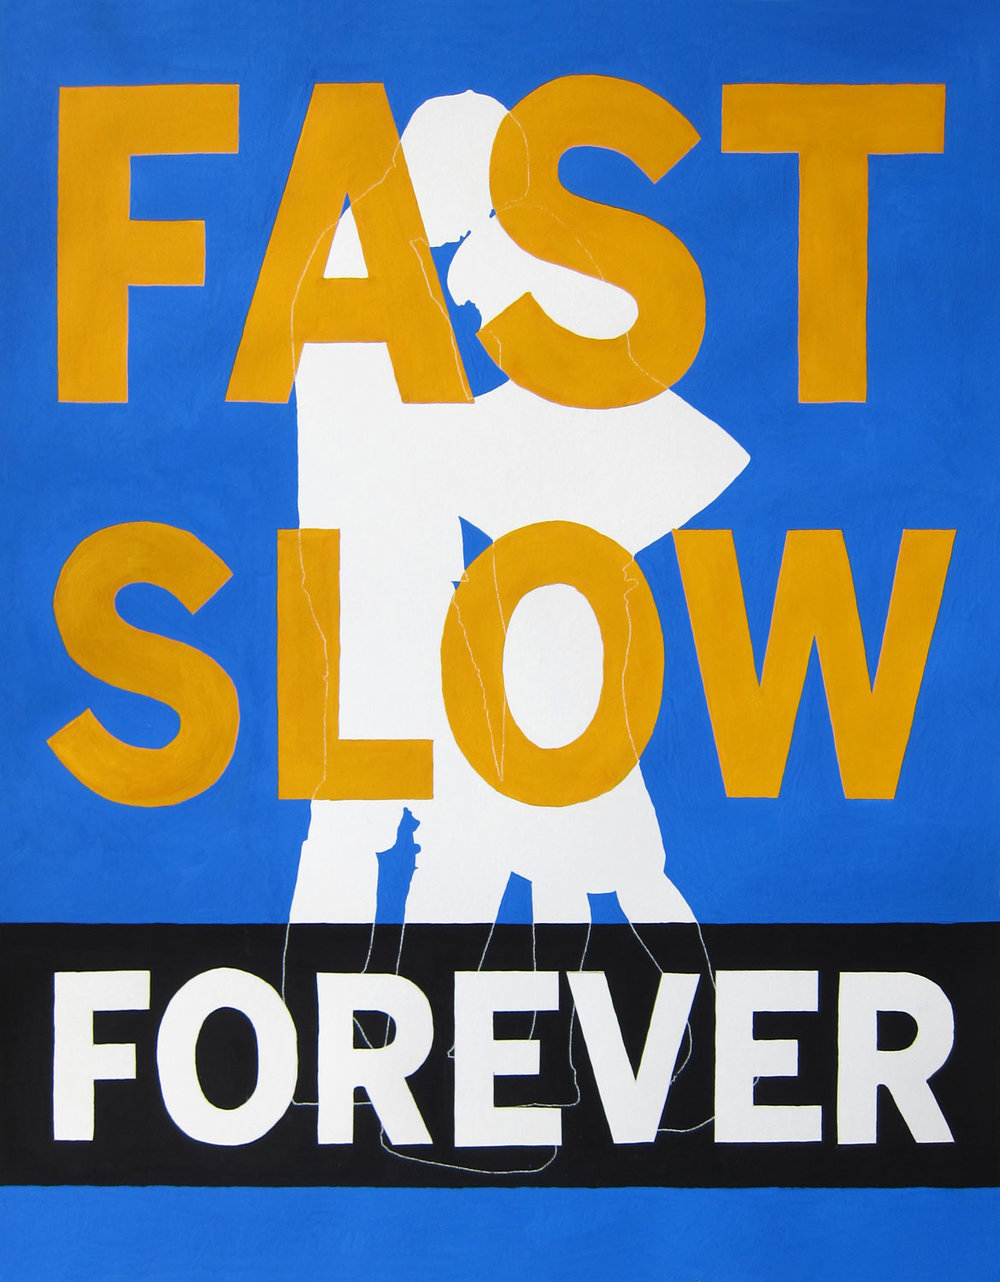 Kelly Sherman   FAST SLOW FOREVER , 2012  Gouache and pencil on paper  16 x 20 inches